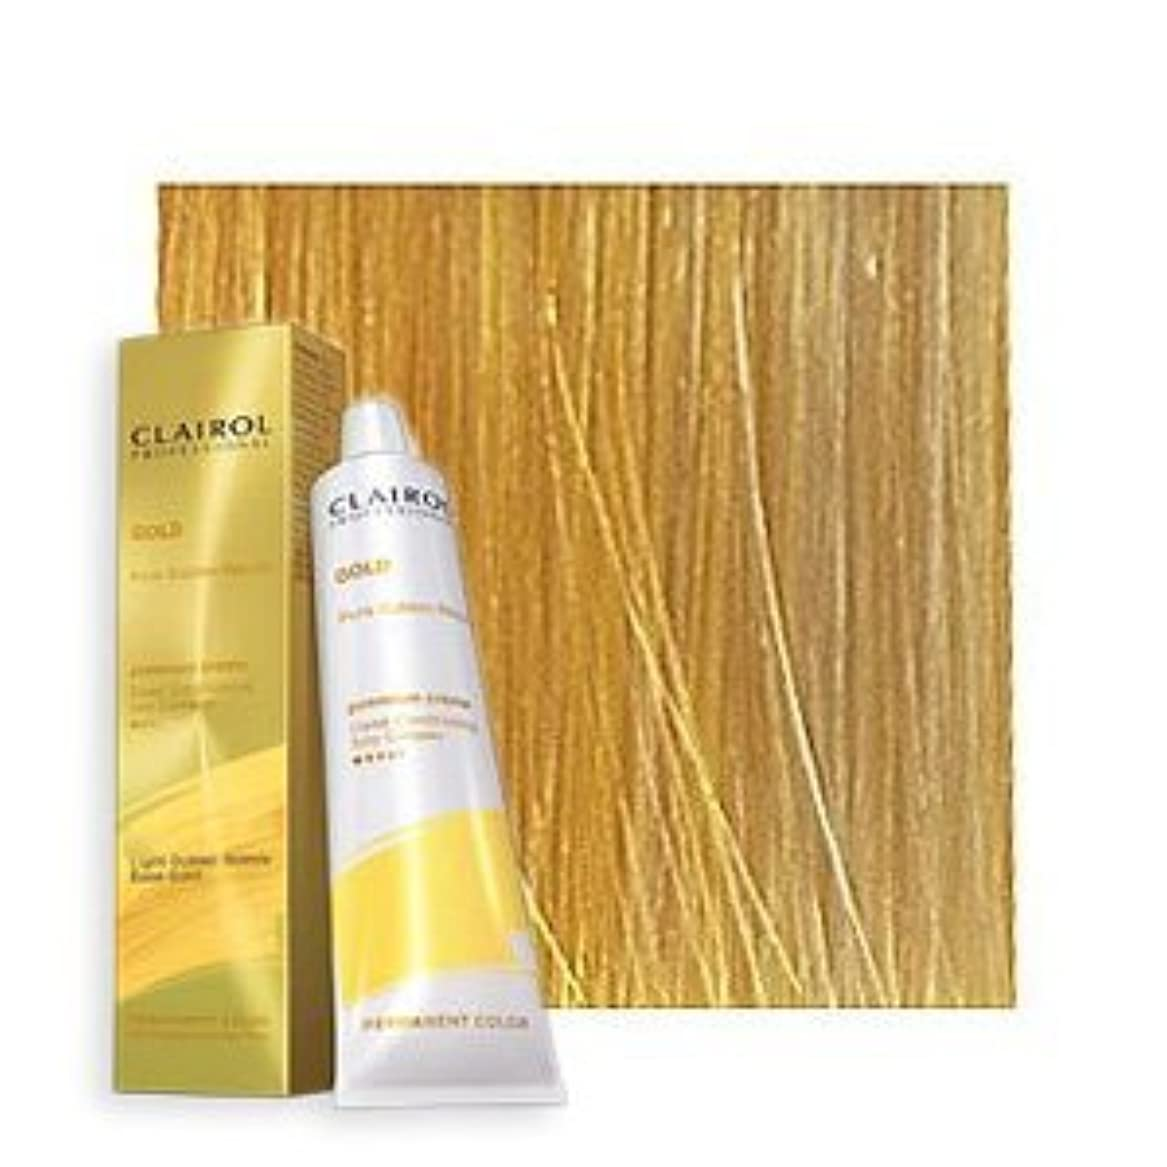 補正調べるシャイClairol Professional - SOY4PLEX - Lightest Golden Blonde 10G - 2 oz / 57 g